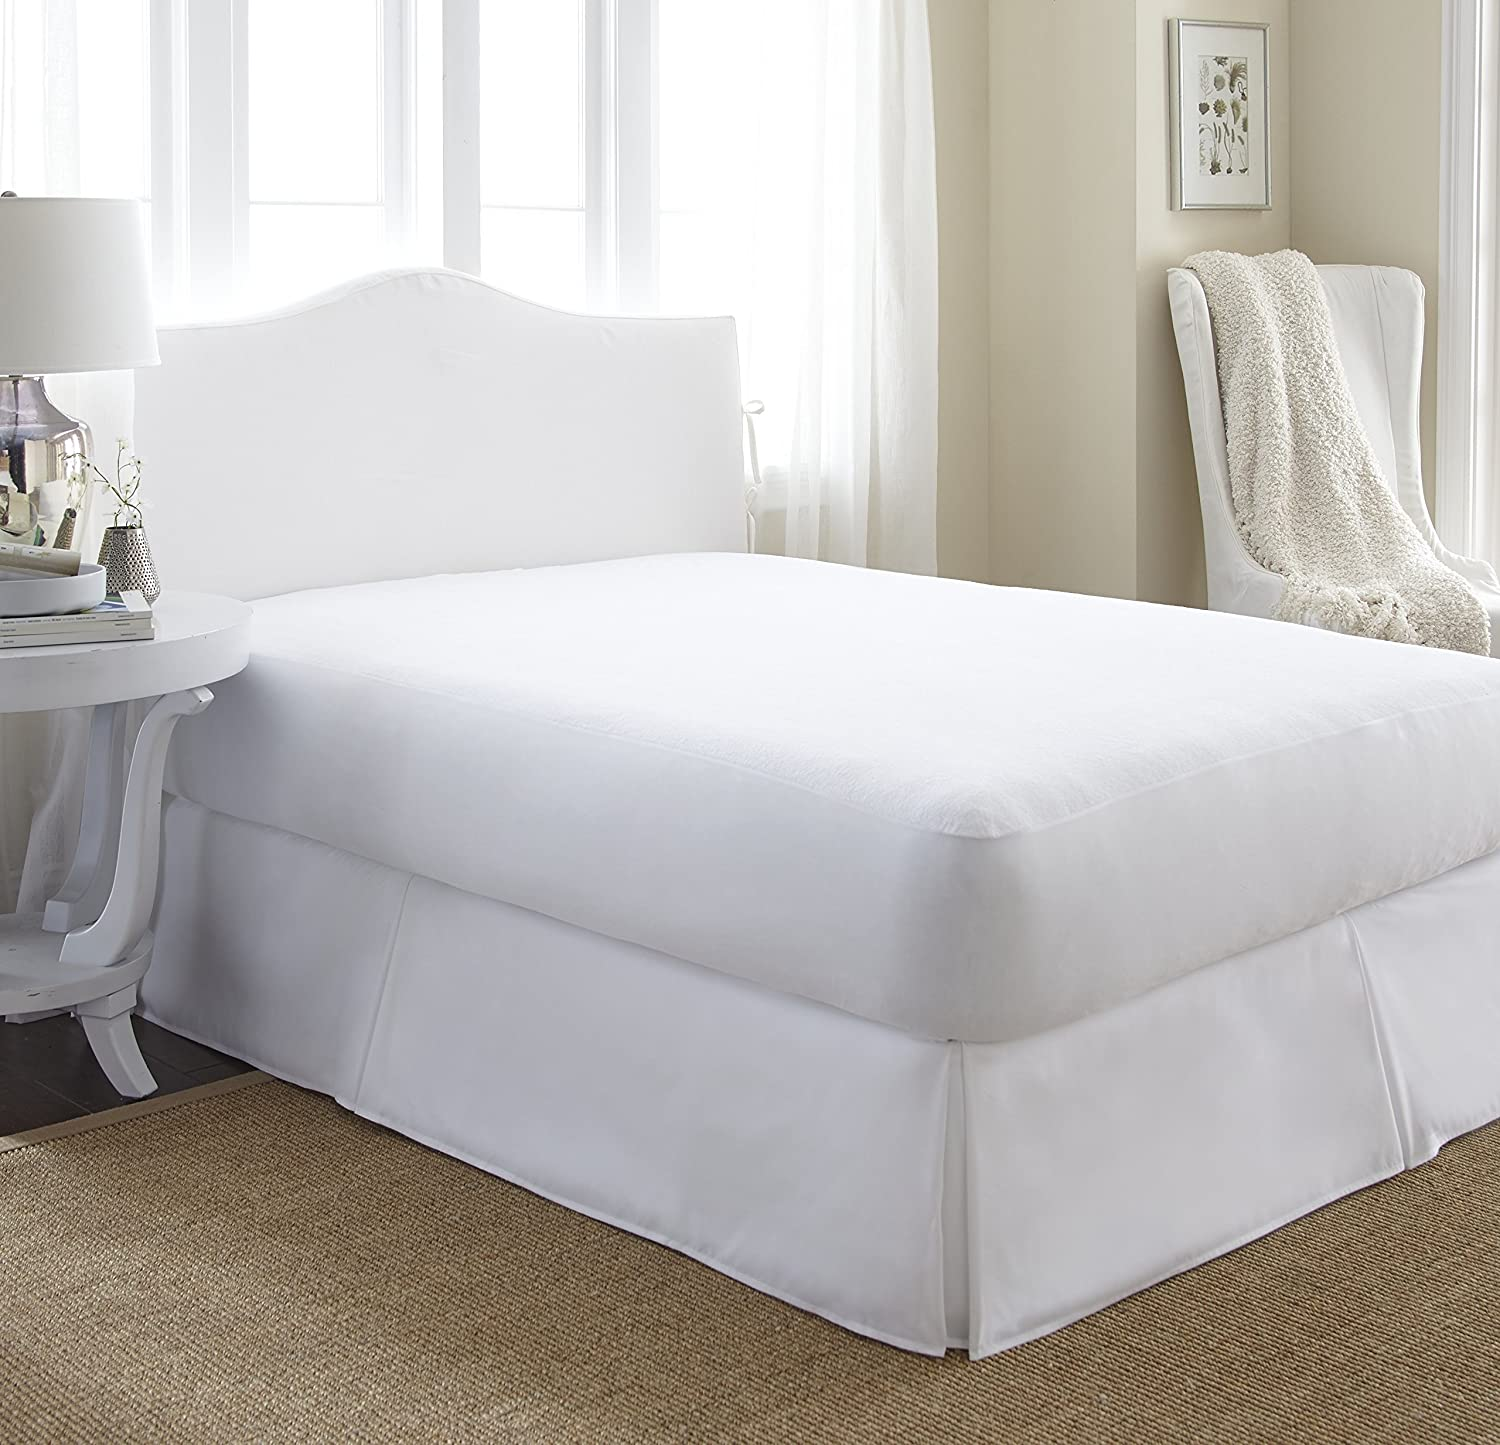 Home Collection IEH-MATTRESSPROT-Calking Silent Home Terry Waterproof Mattress Protector California King White ienjoy Home